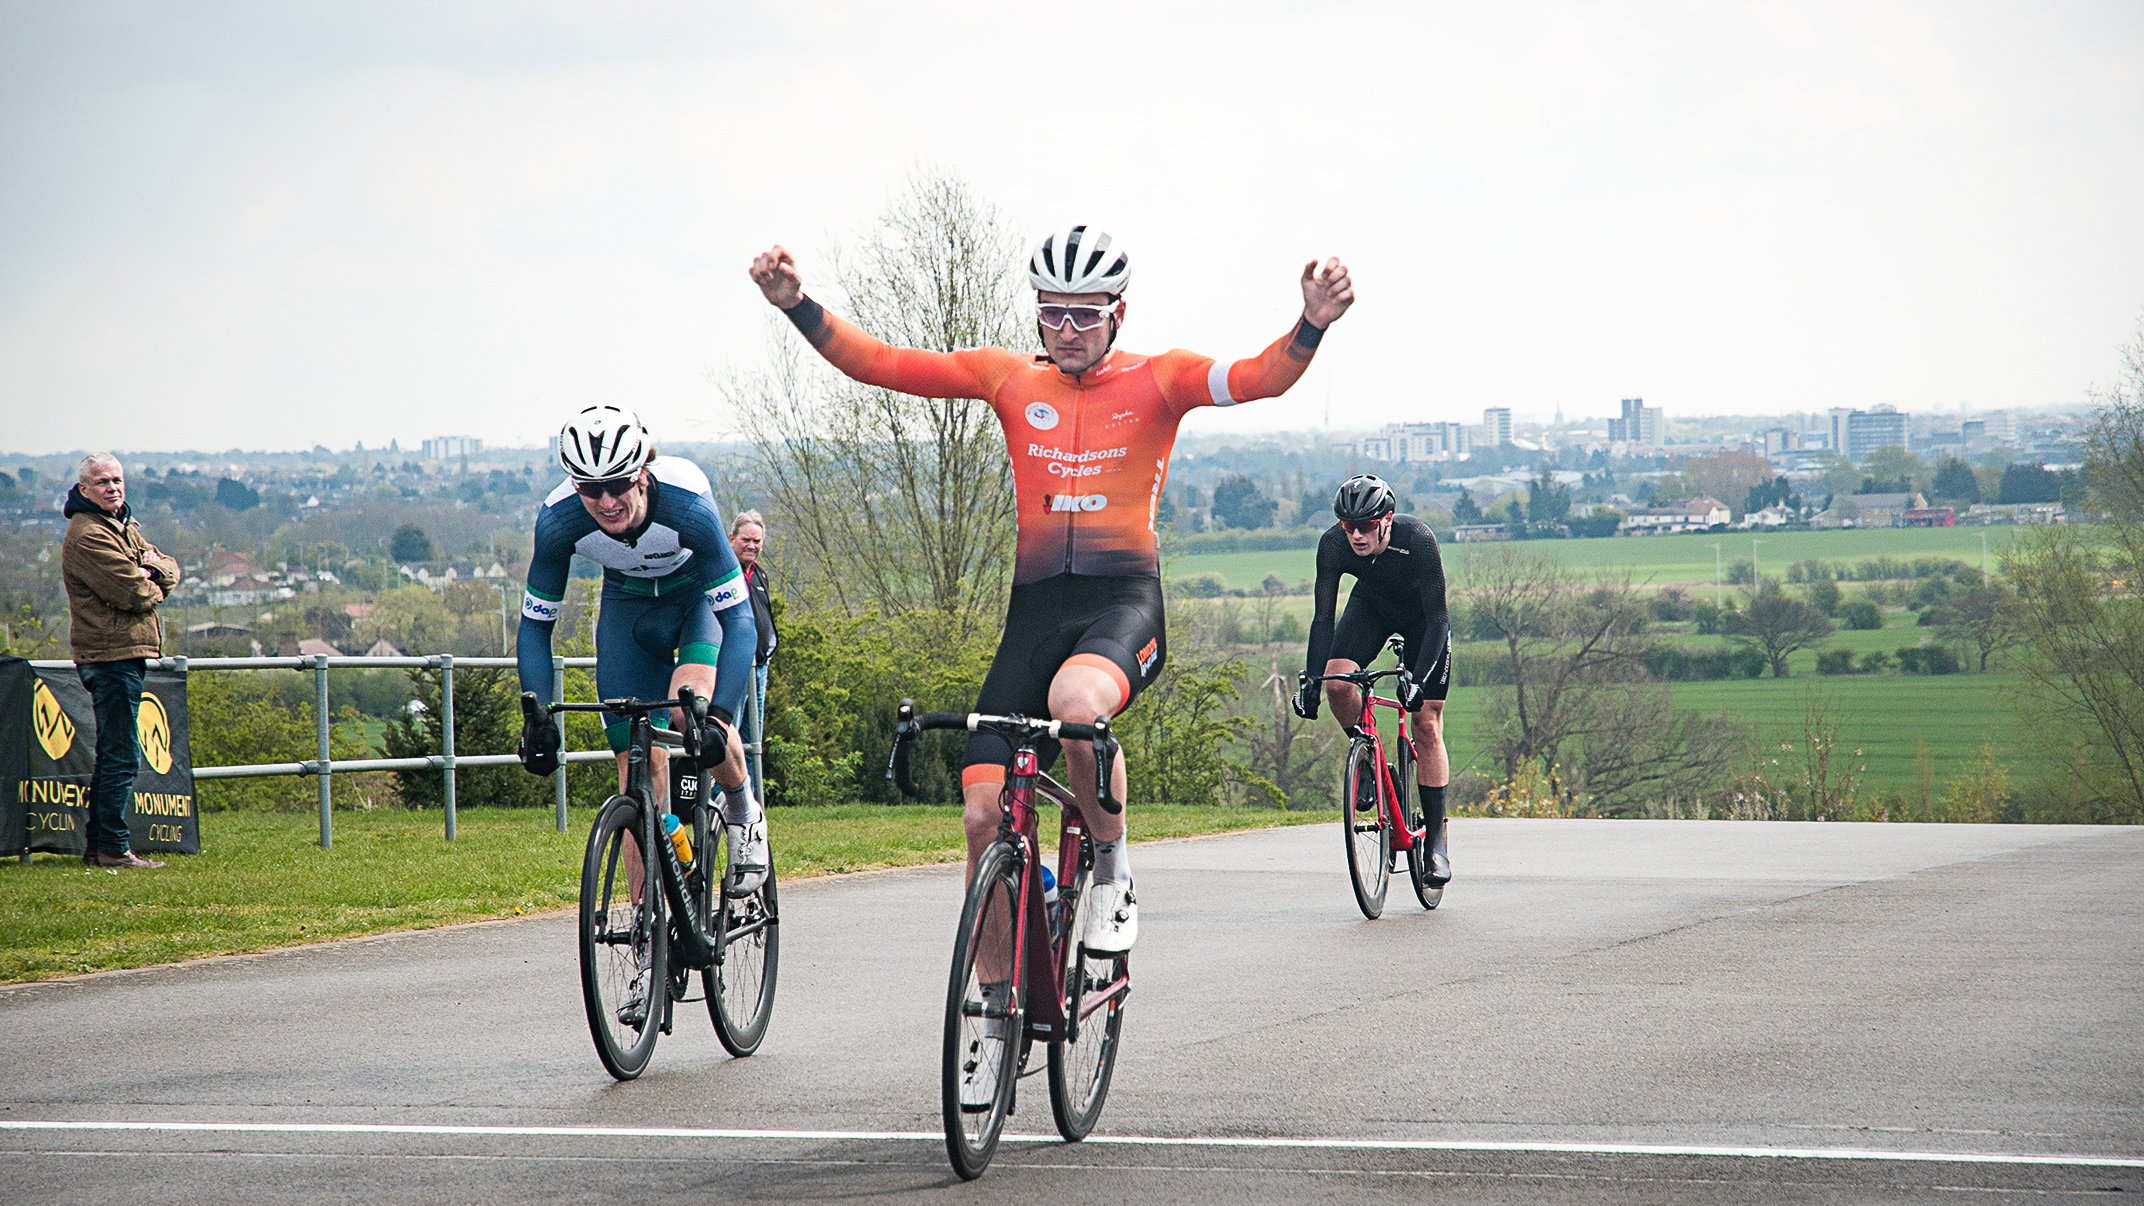 2019 Monument Spring crits 5s (1 of 1).JPG